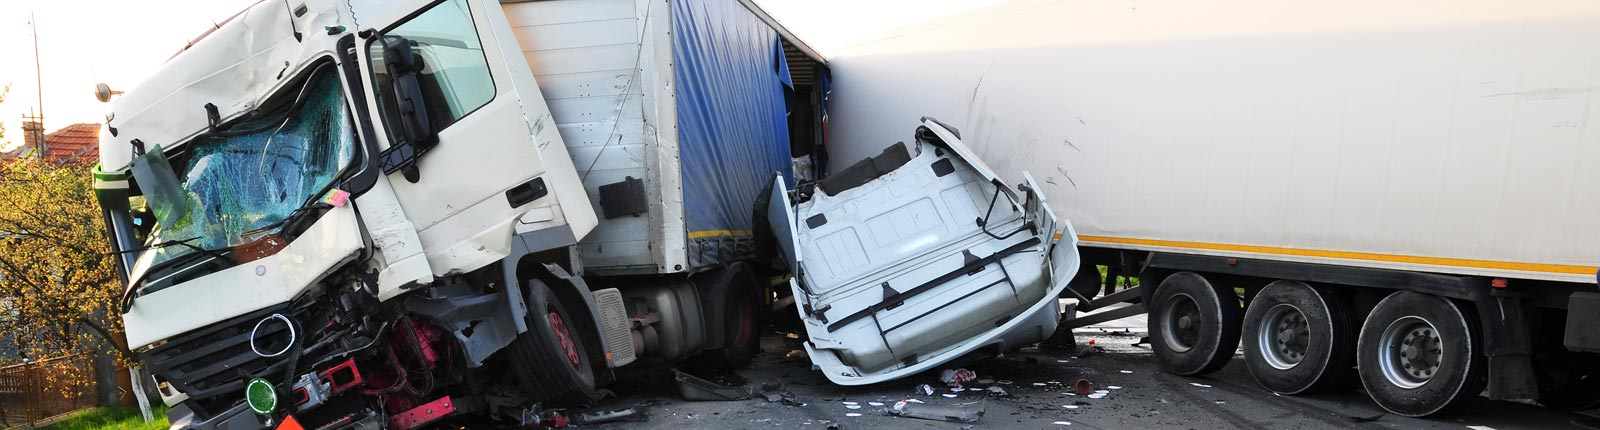 Truck Accident Lawyer Austin TX | Semi Truck 18 Wheeler